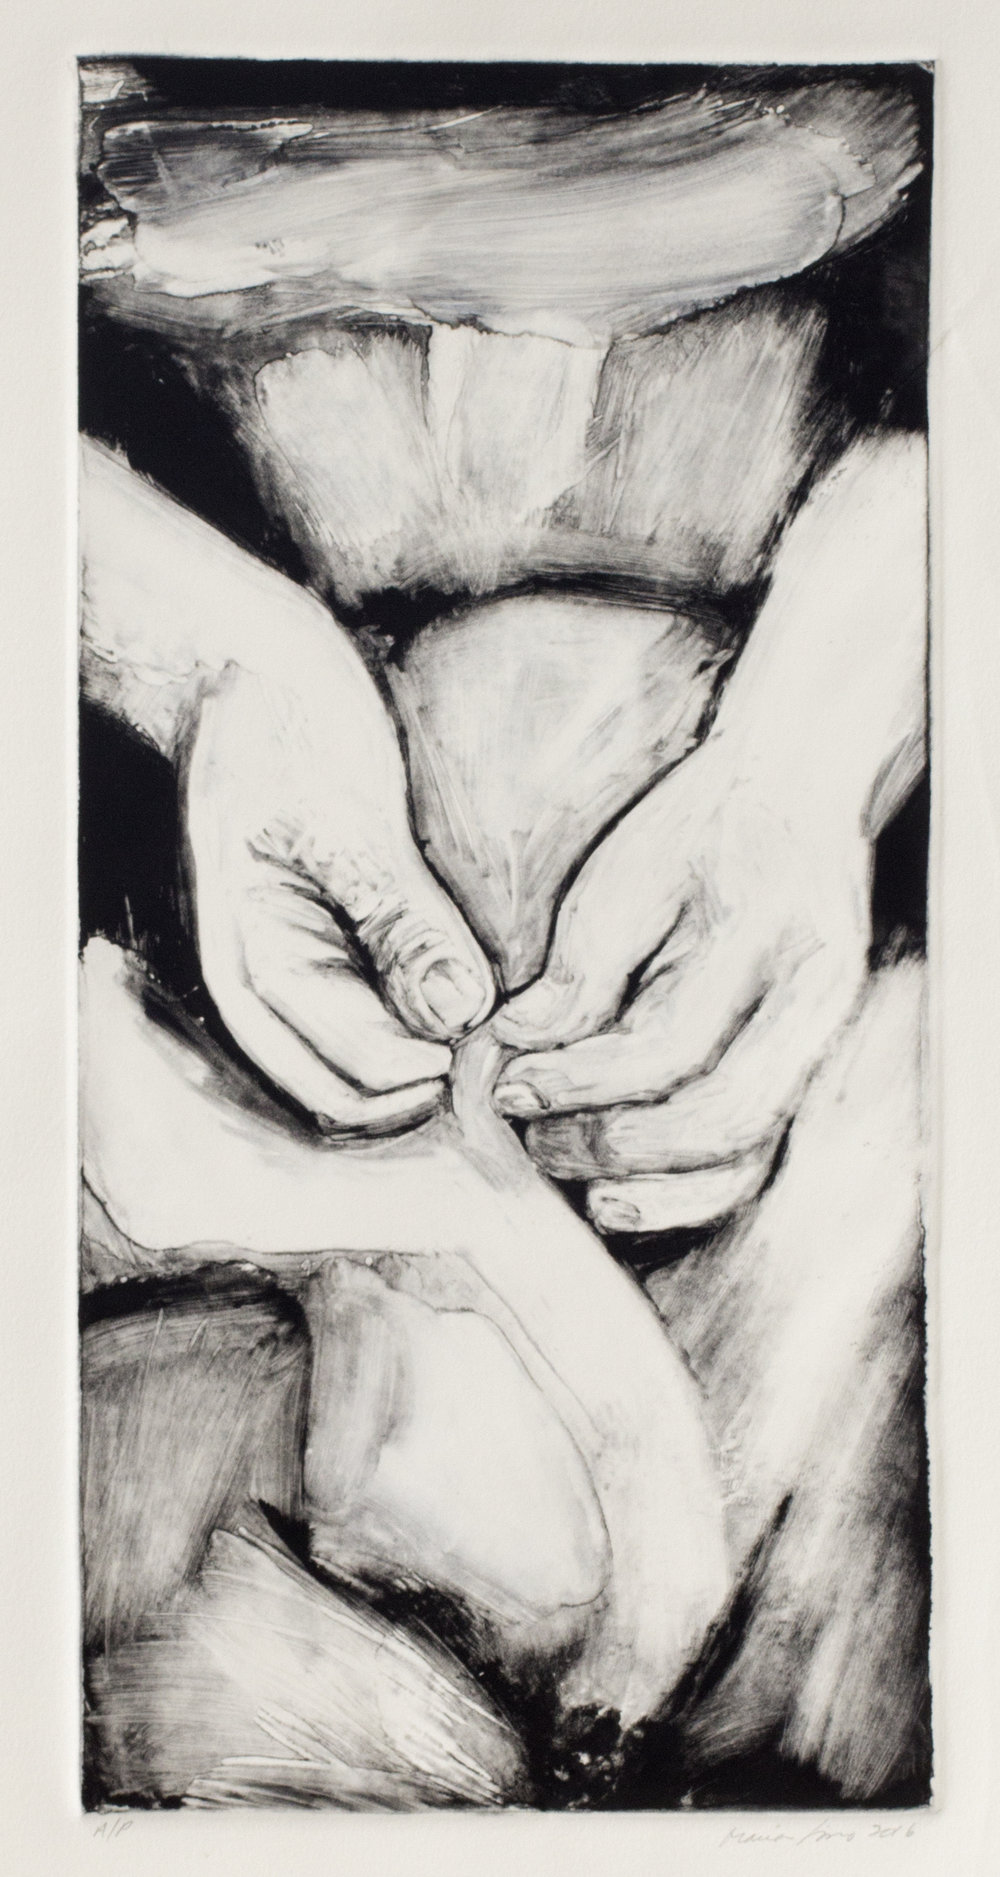 Sewing Hands, 2016